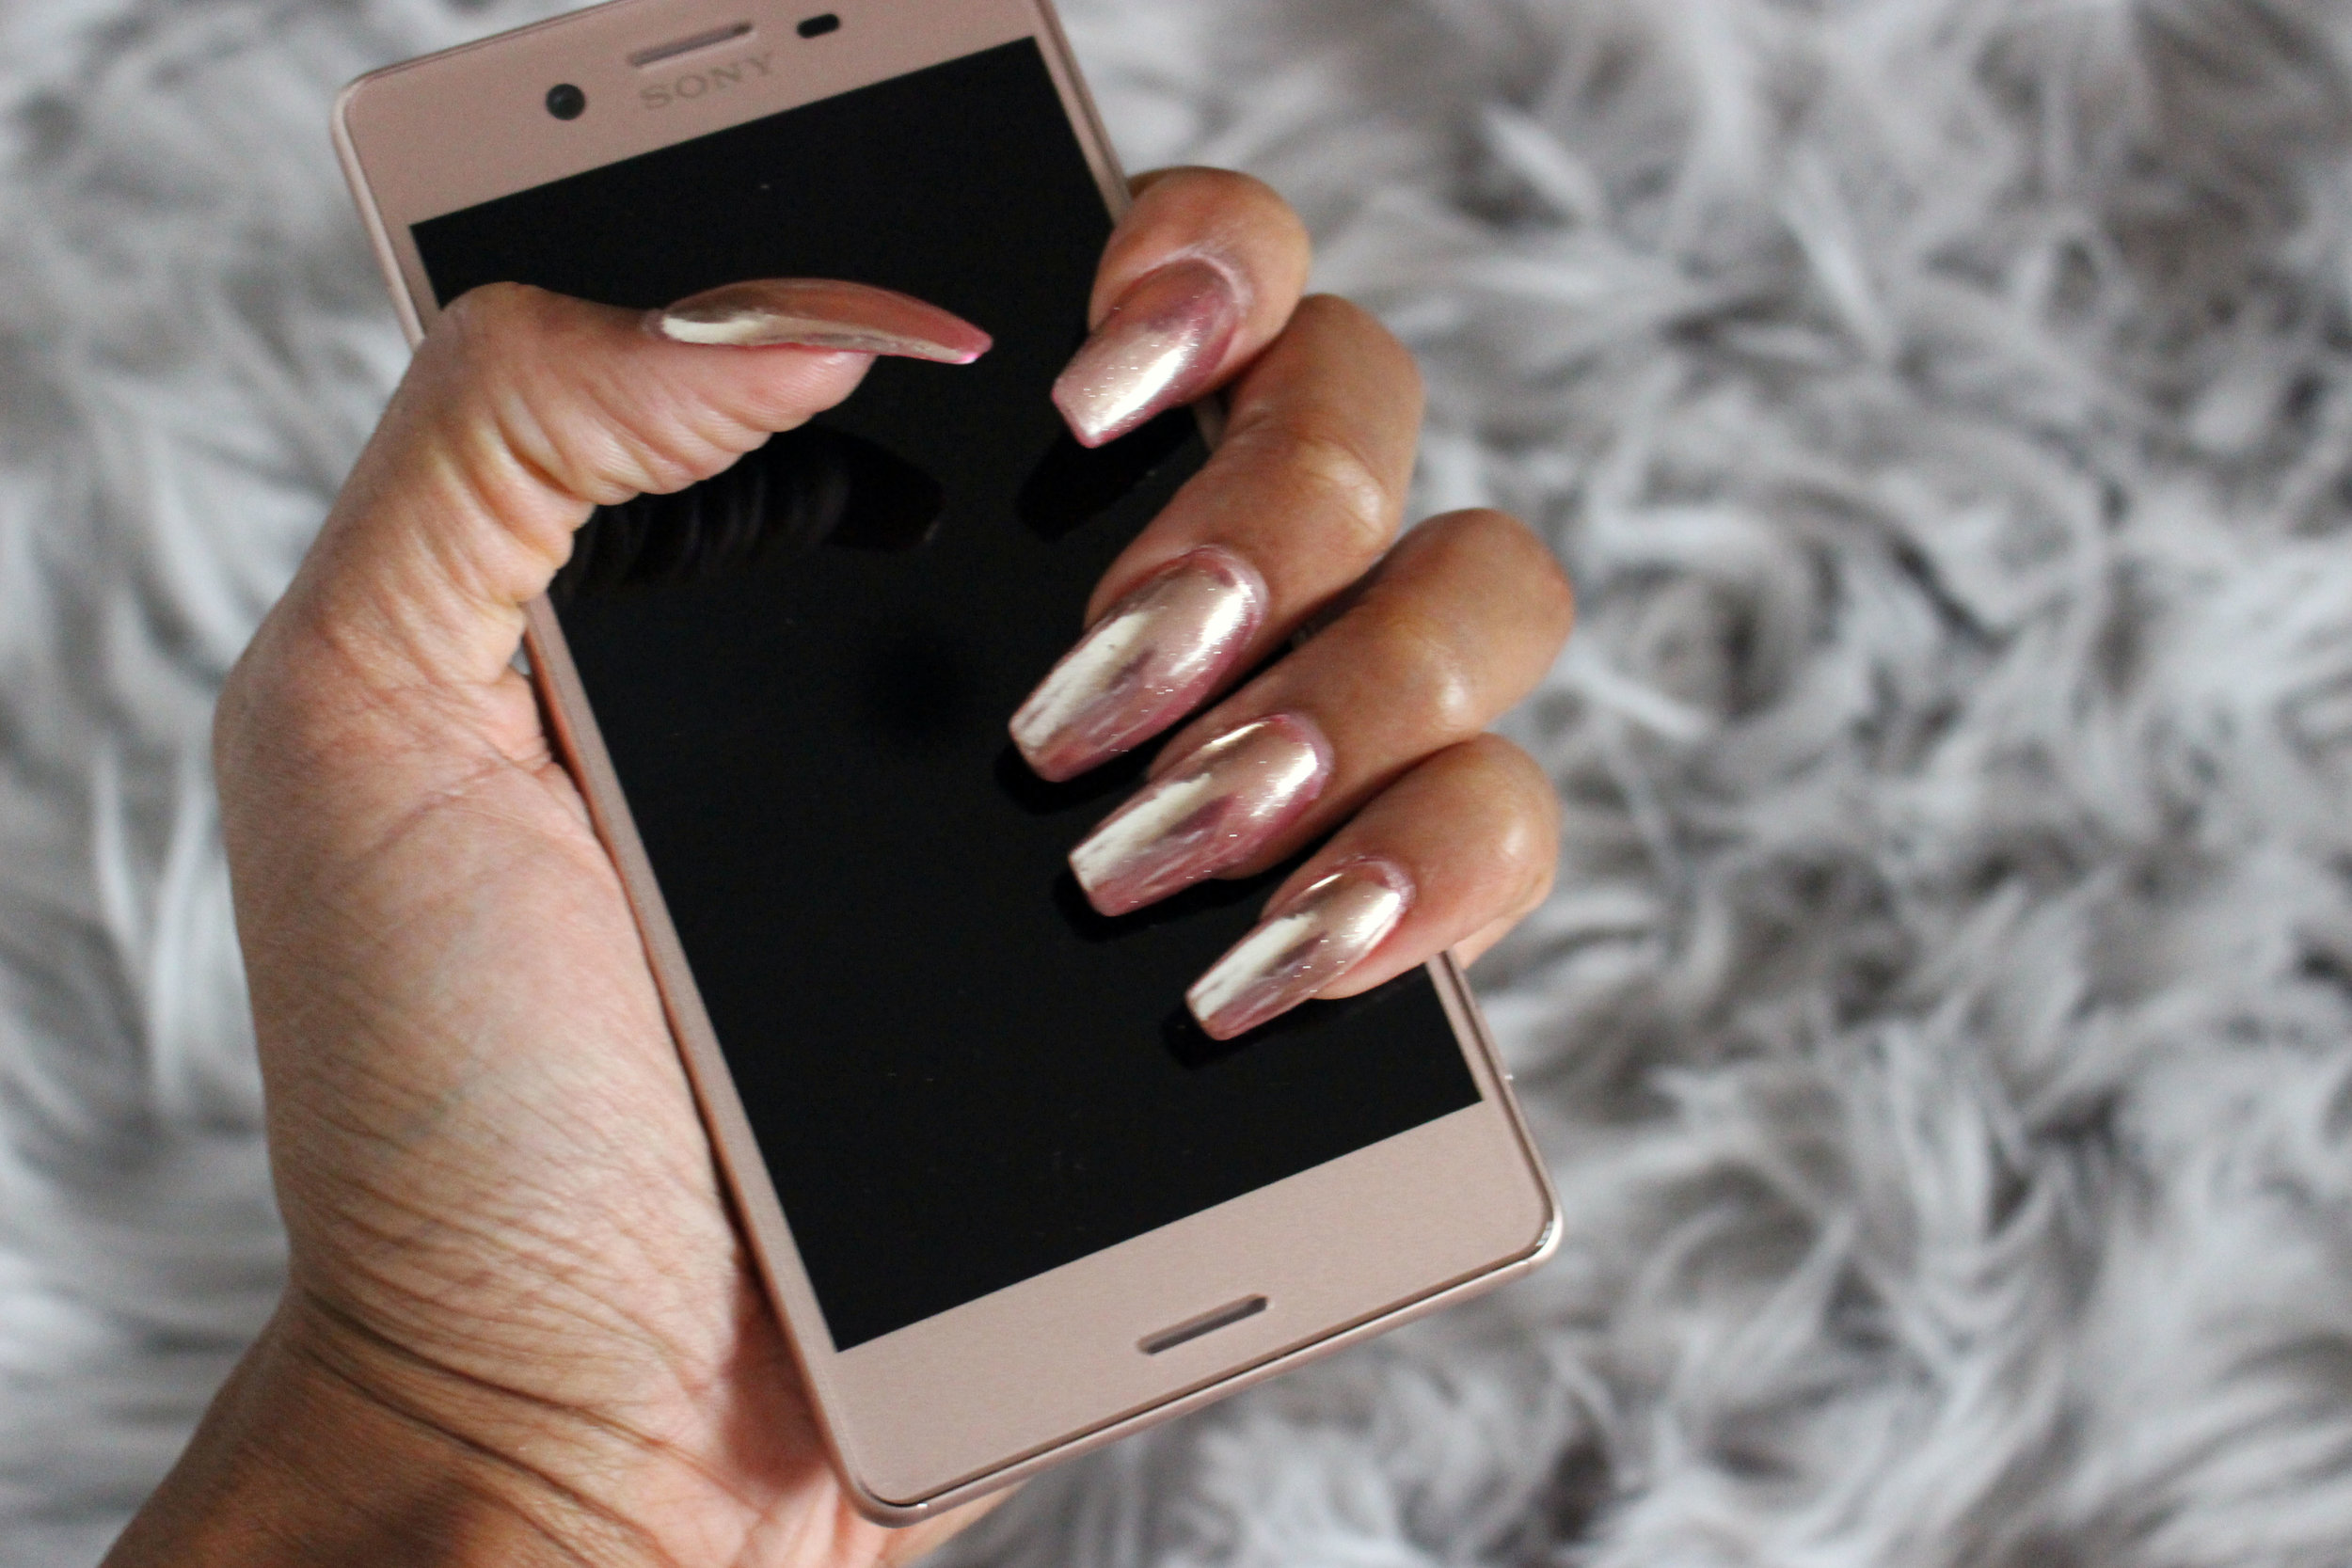 Rose Gold Sony Xperia X Rose Gold Chrome Nails